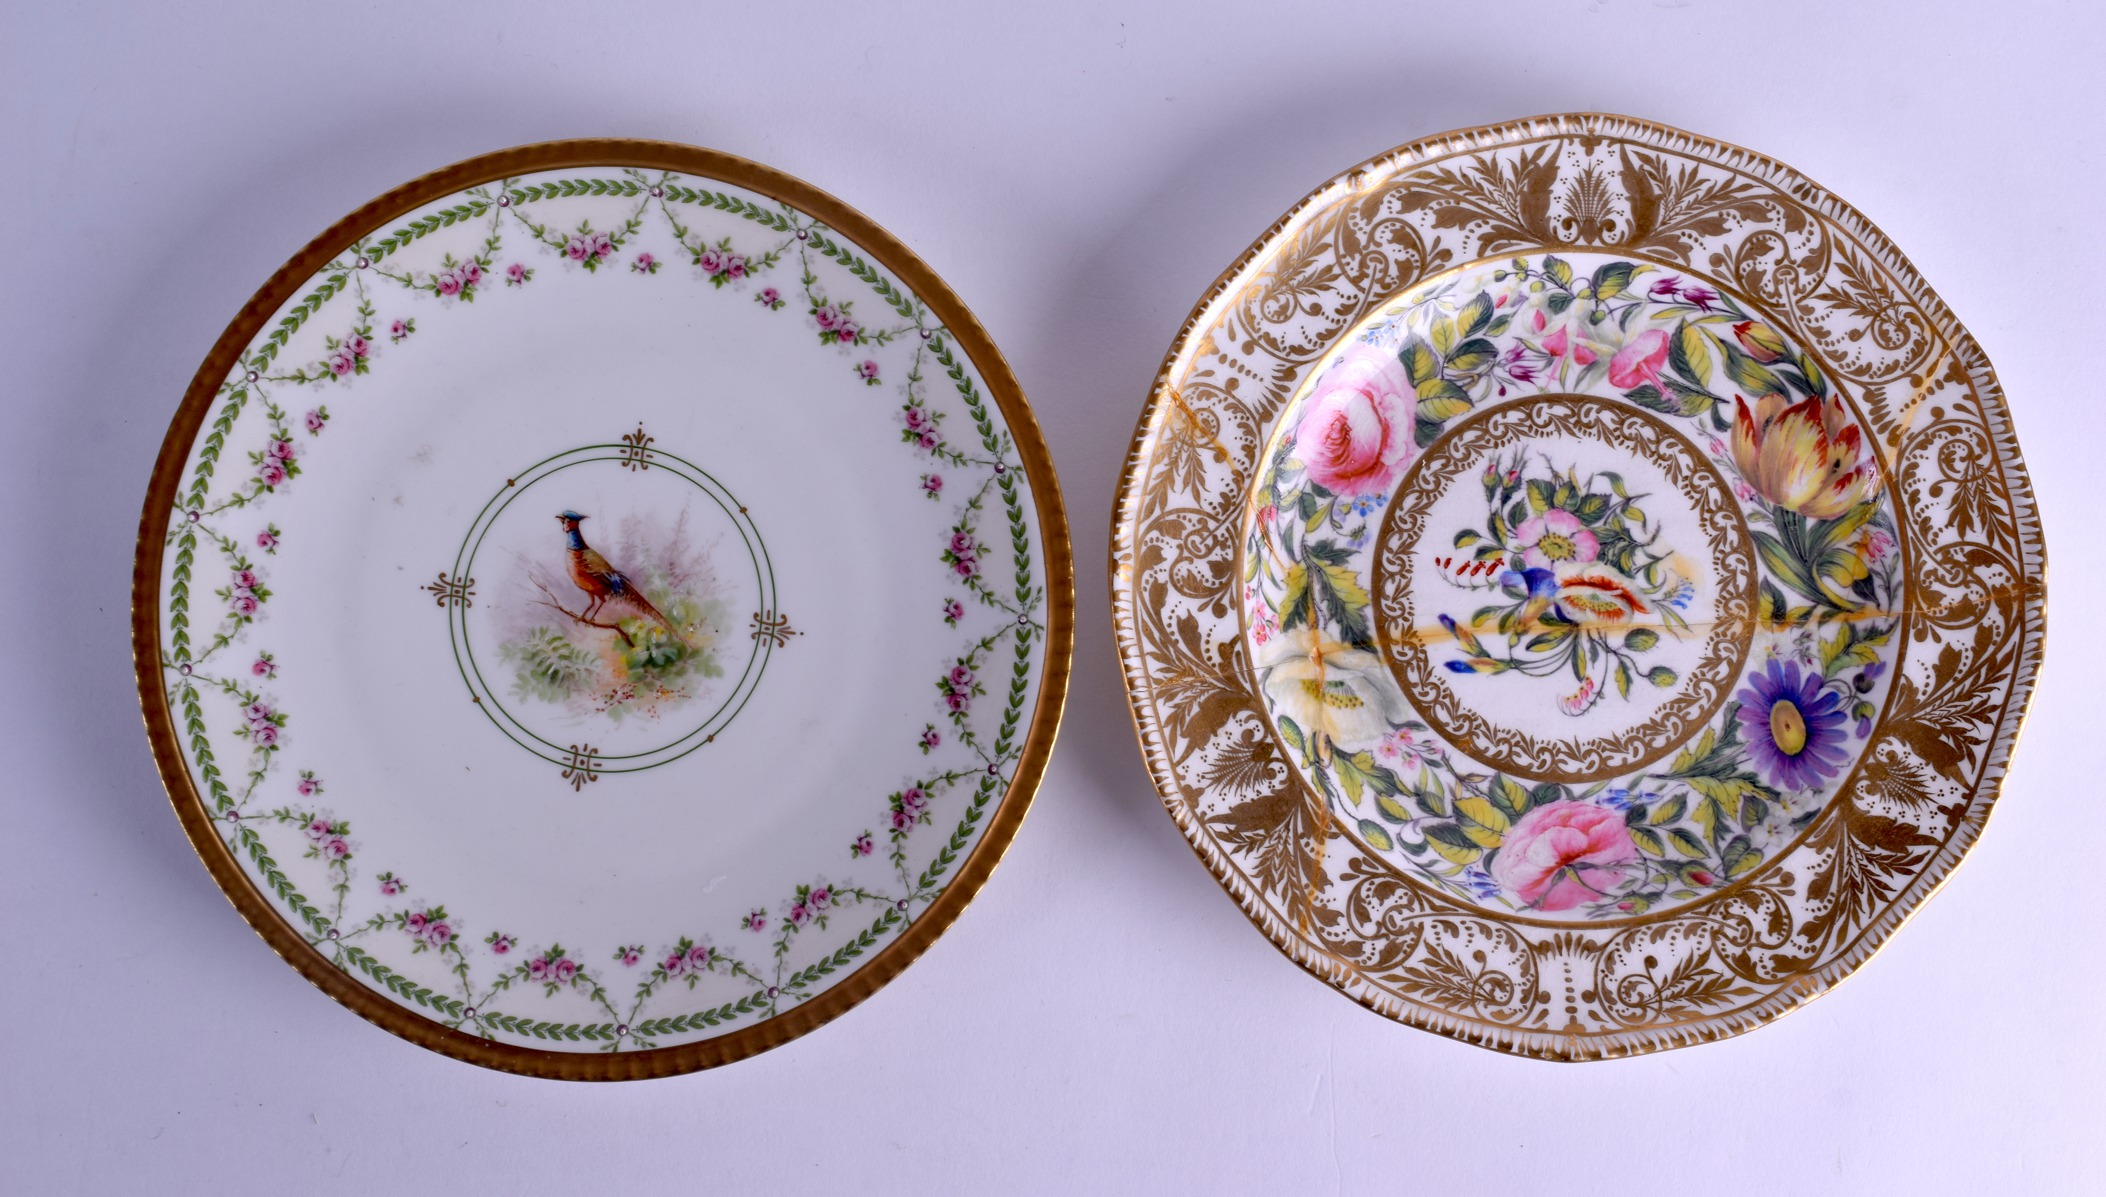 Lot 112 - A 19TH CENTURY FRENCH LIMOGES PORCELAIN PLATE together with a Derby King street plate. 23 cm